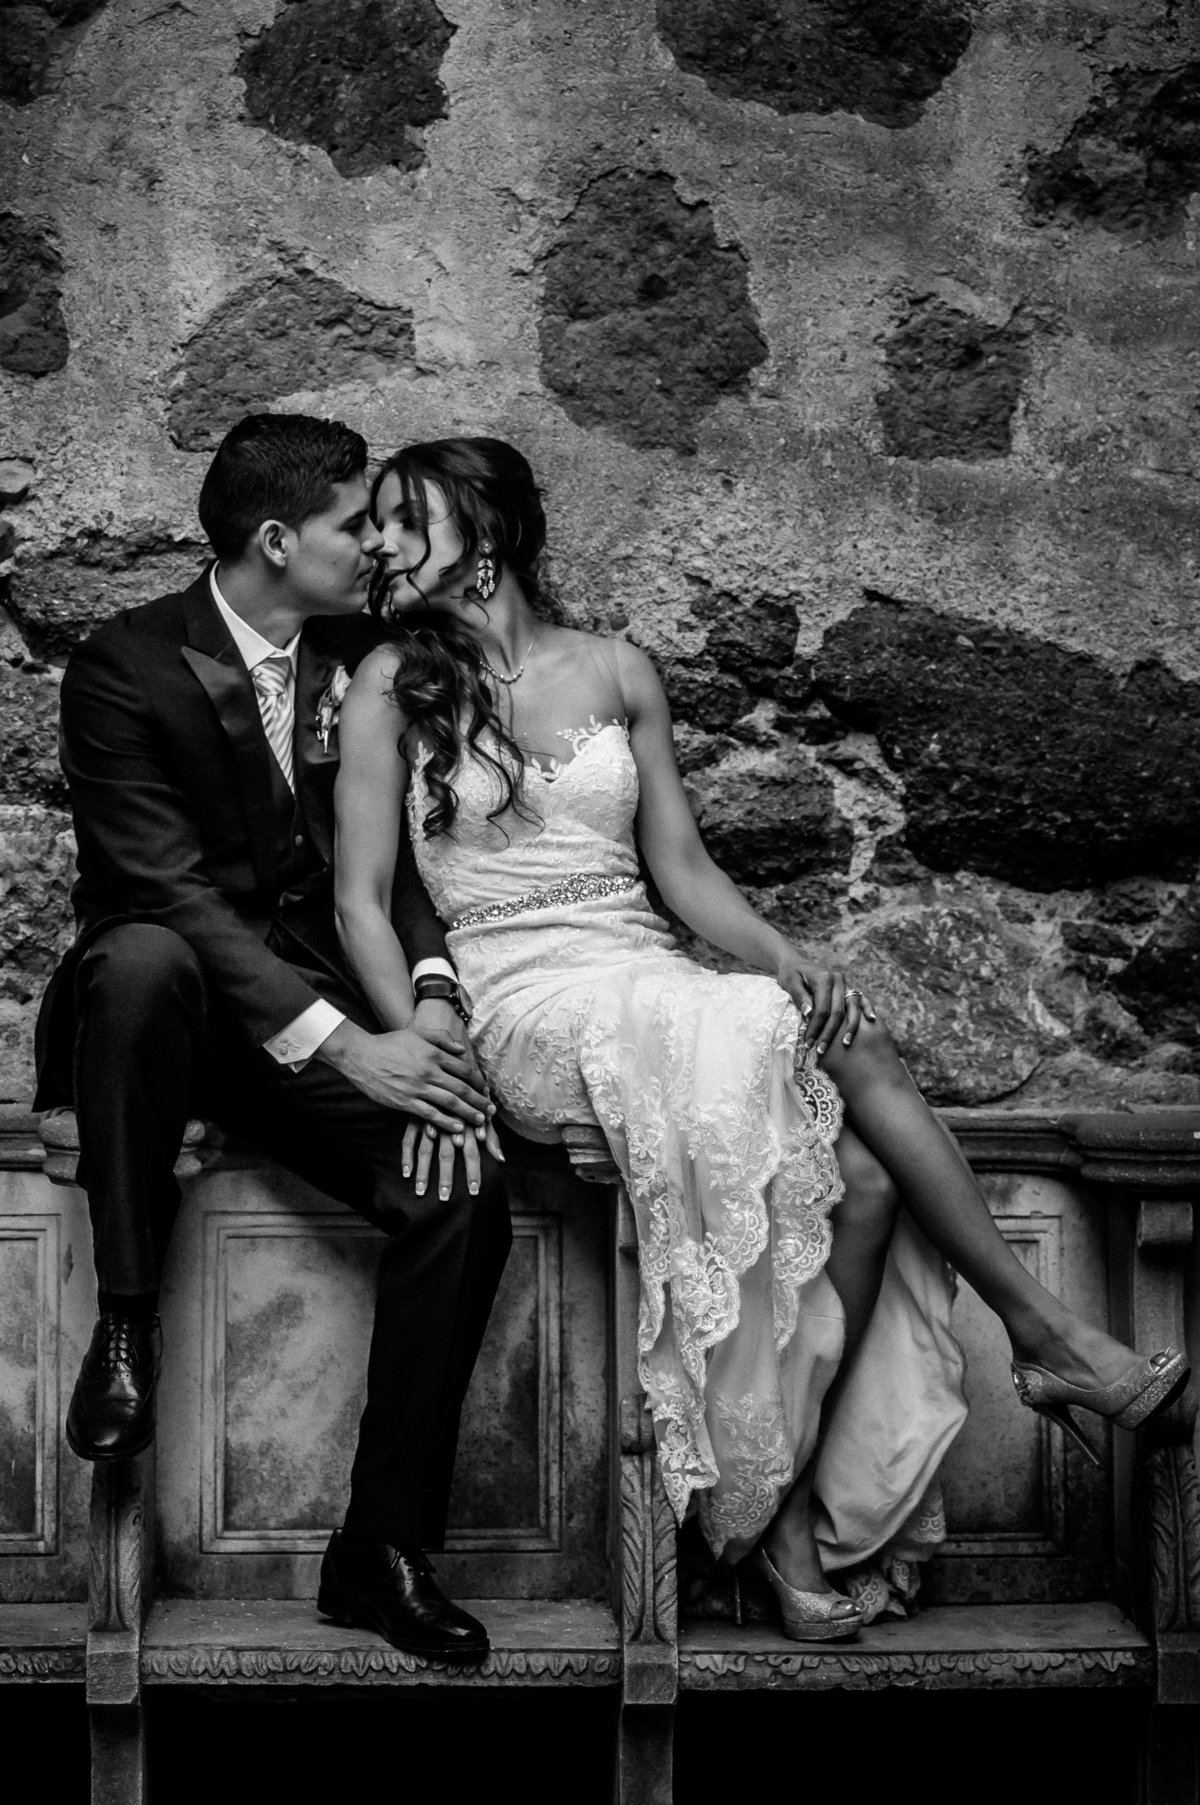 Guanajuato Wedding Photo by Dan Dalstra